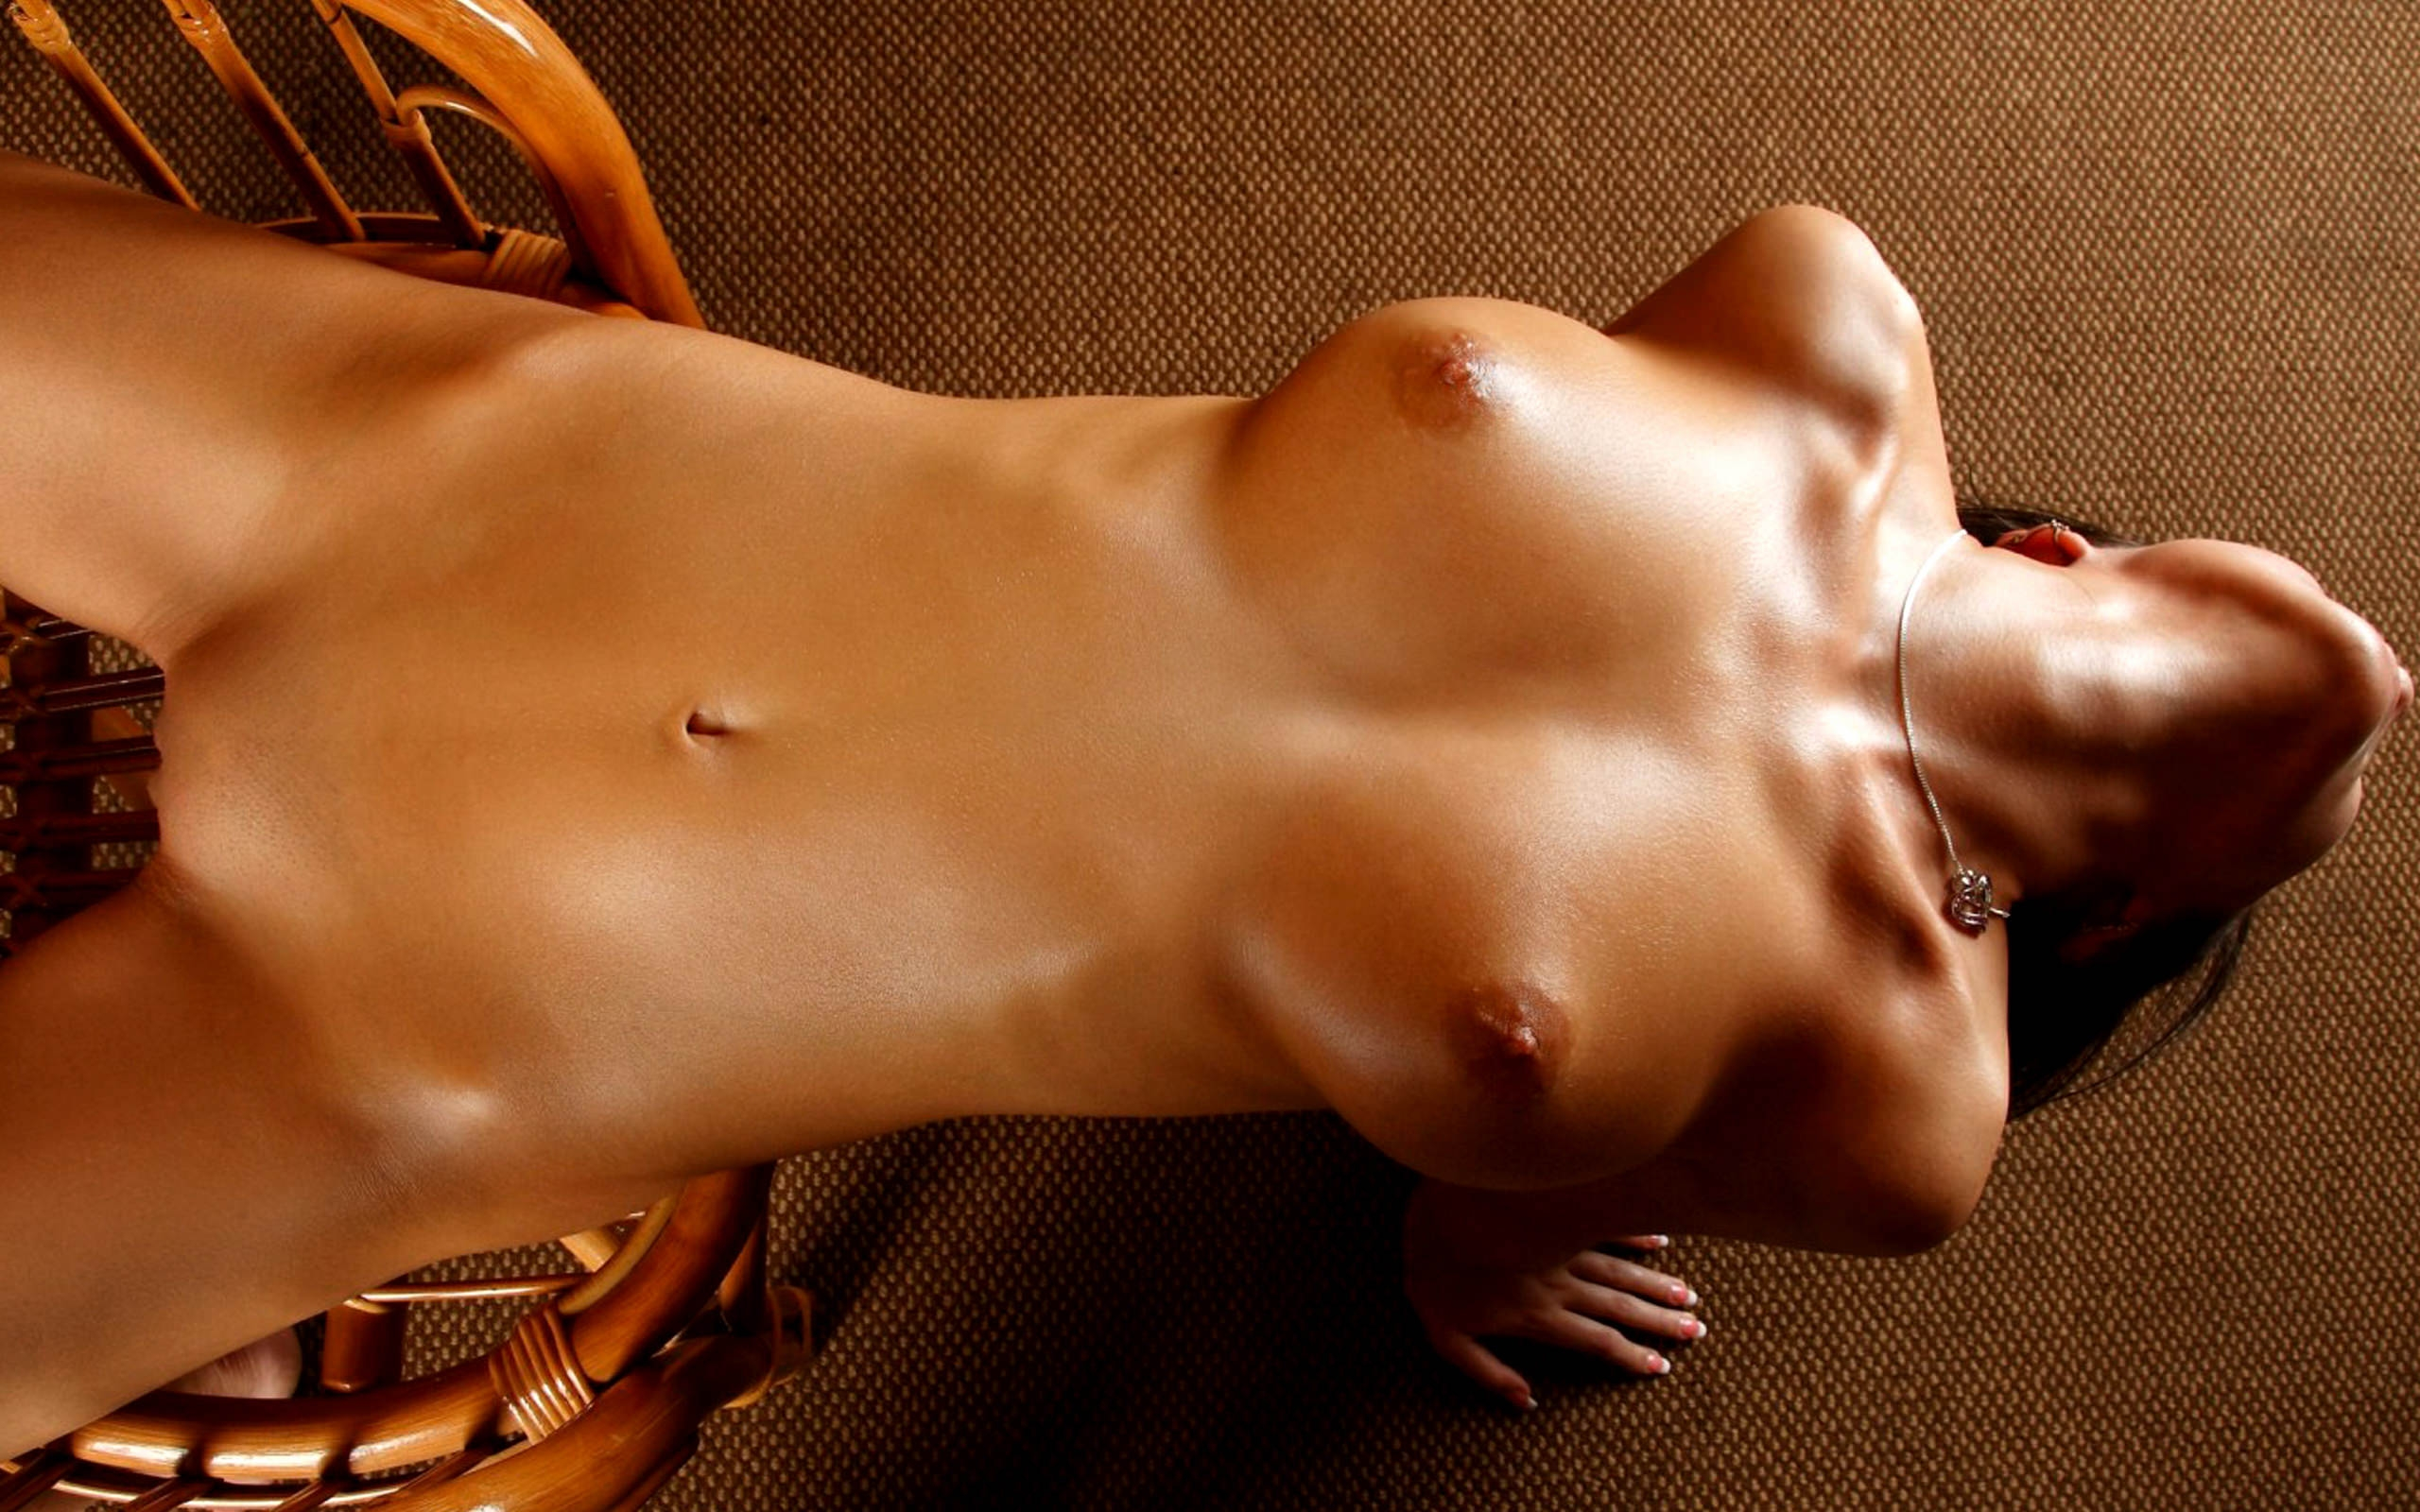 The Beauty Of Tight Binding, Naked Body Tied Up To A Pole, Nude Art, Fine